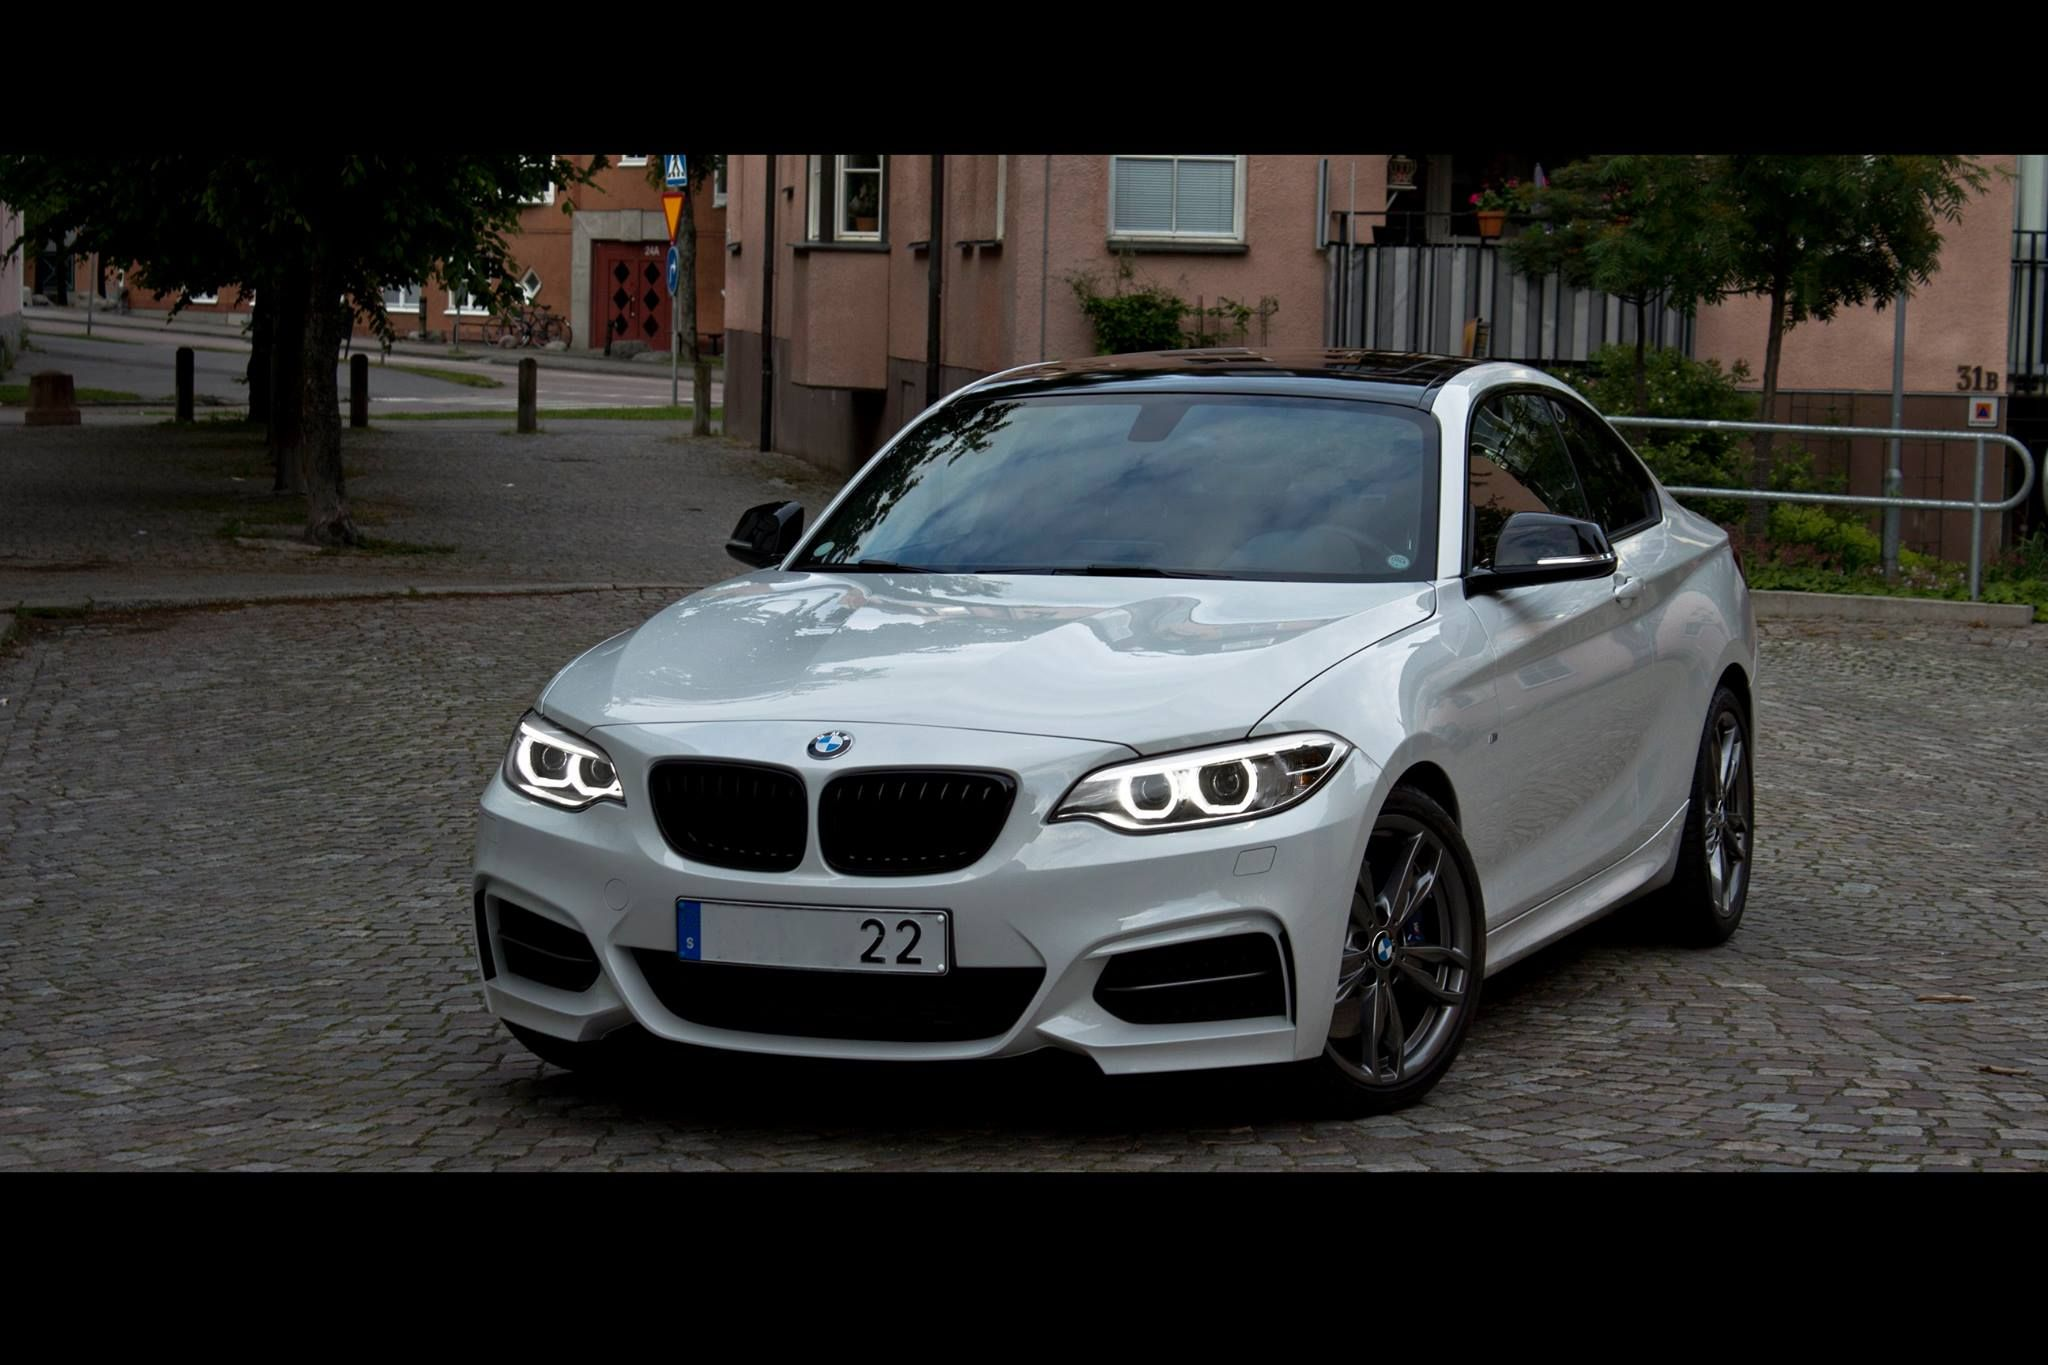 Alp White M235i Slightly Modded Page 2 With Images Bmw Bmw